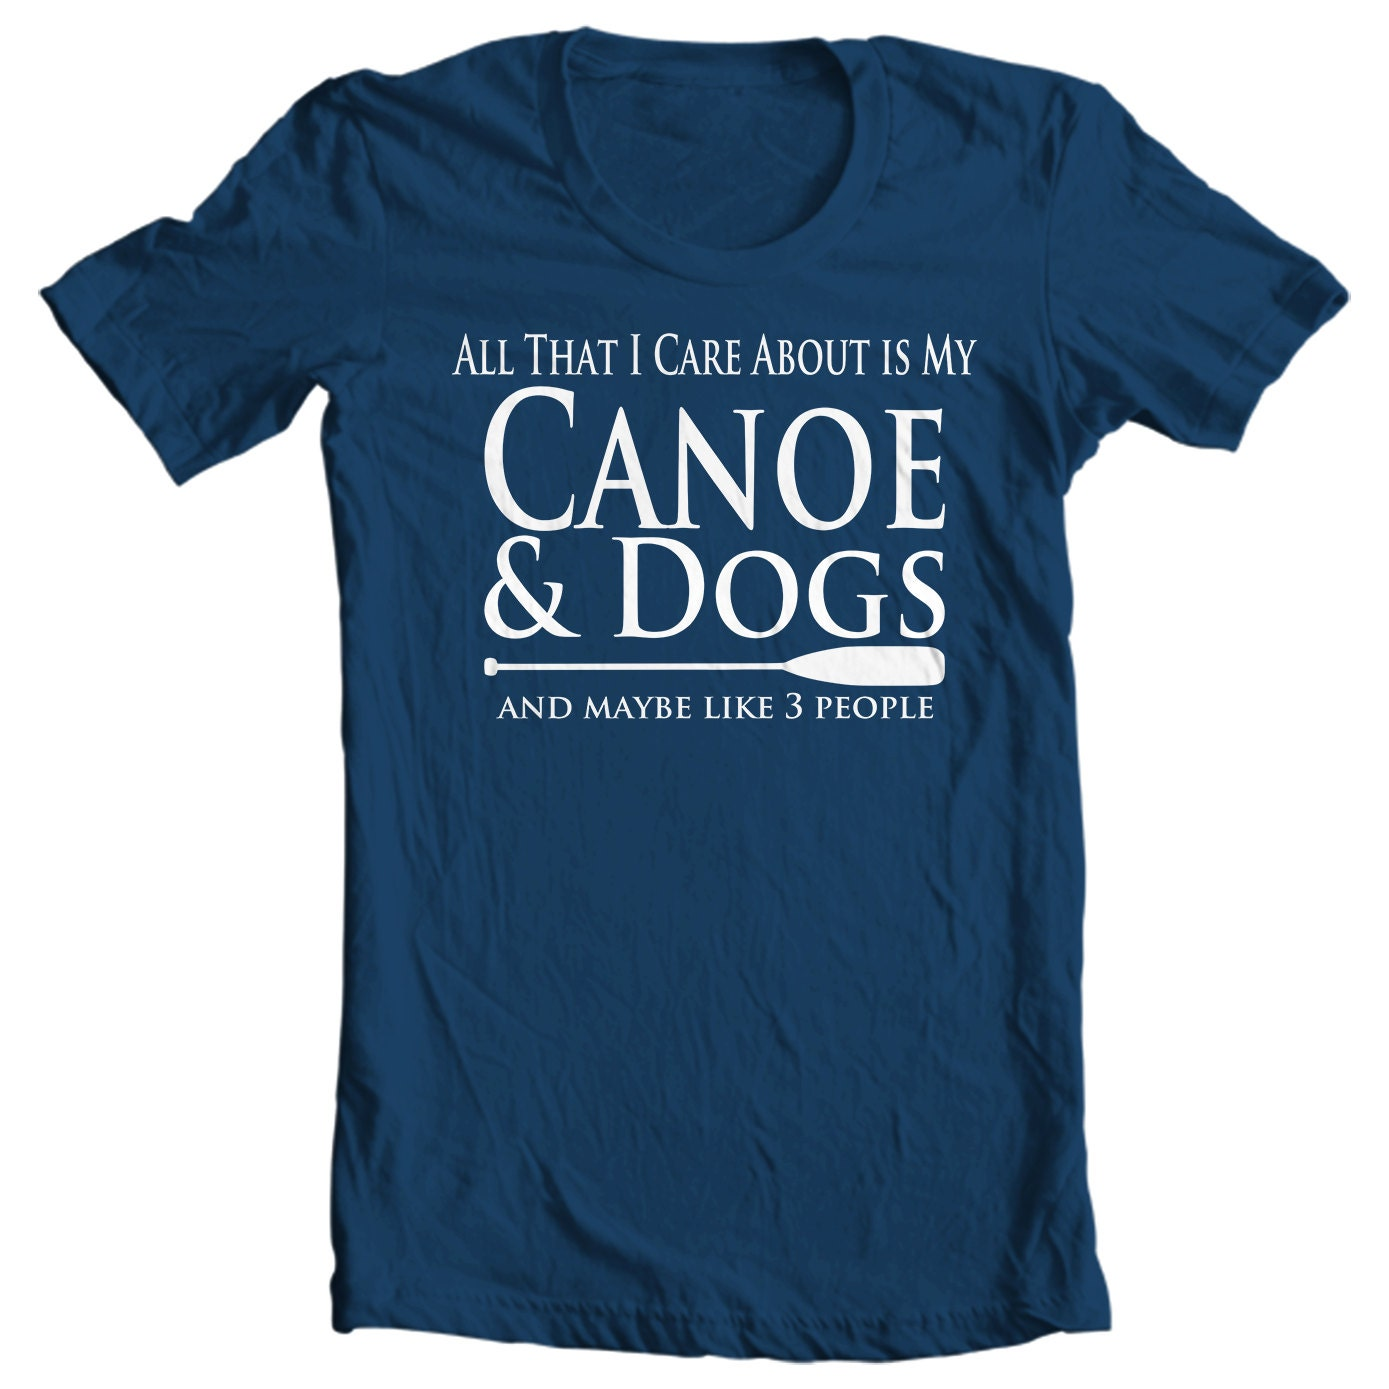 Canoe T-shirt - All That I Care About Is My Canoe & Dogs And Maybe Like Three People - Paddle Life Canoeing T-shirt